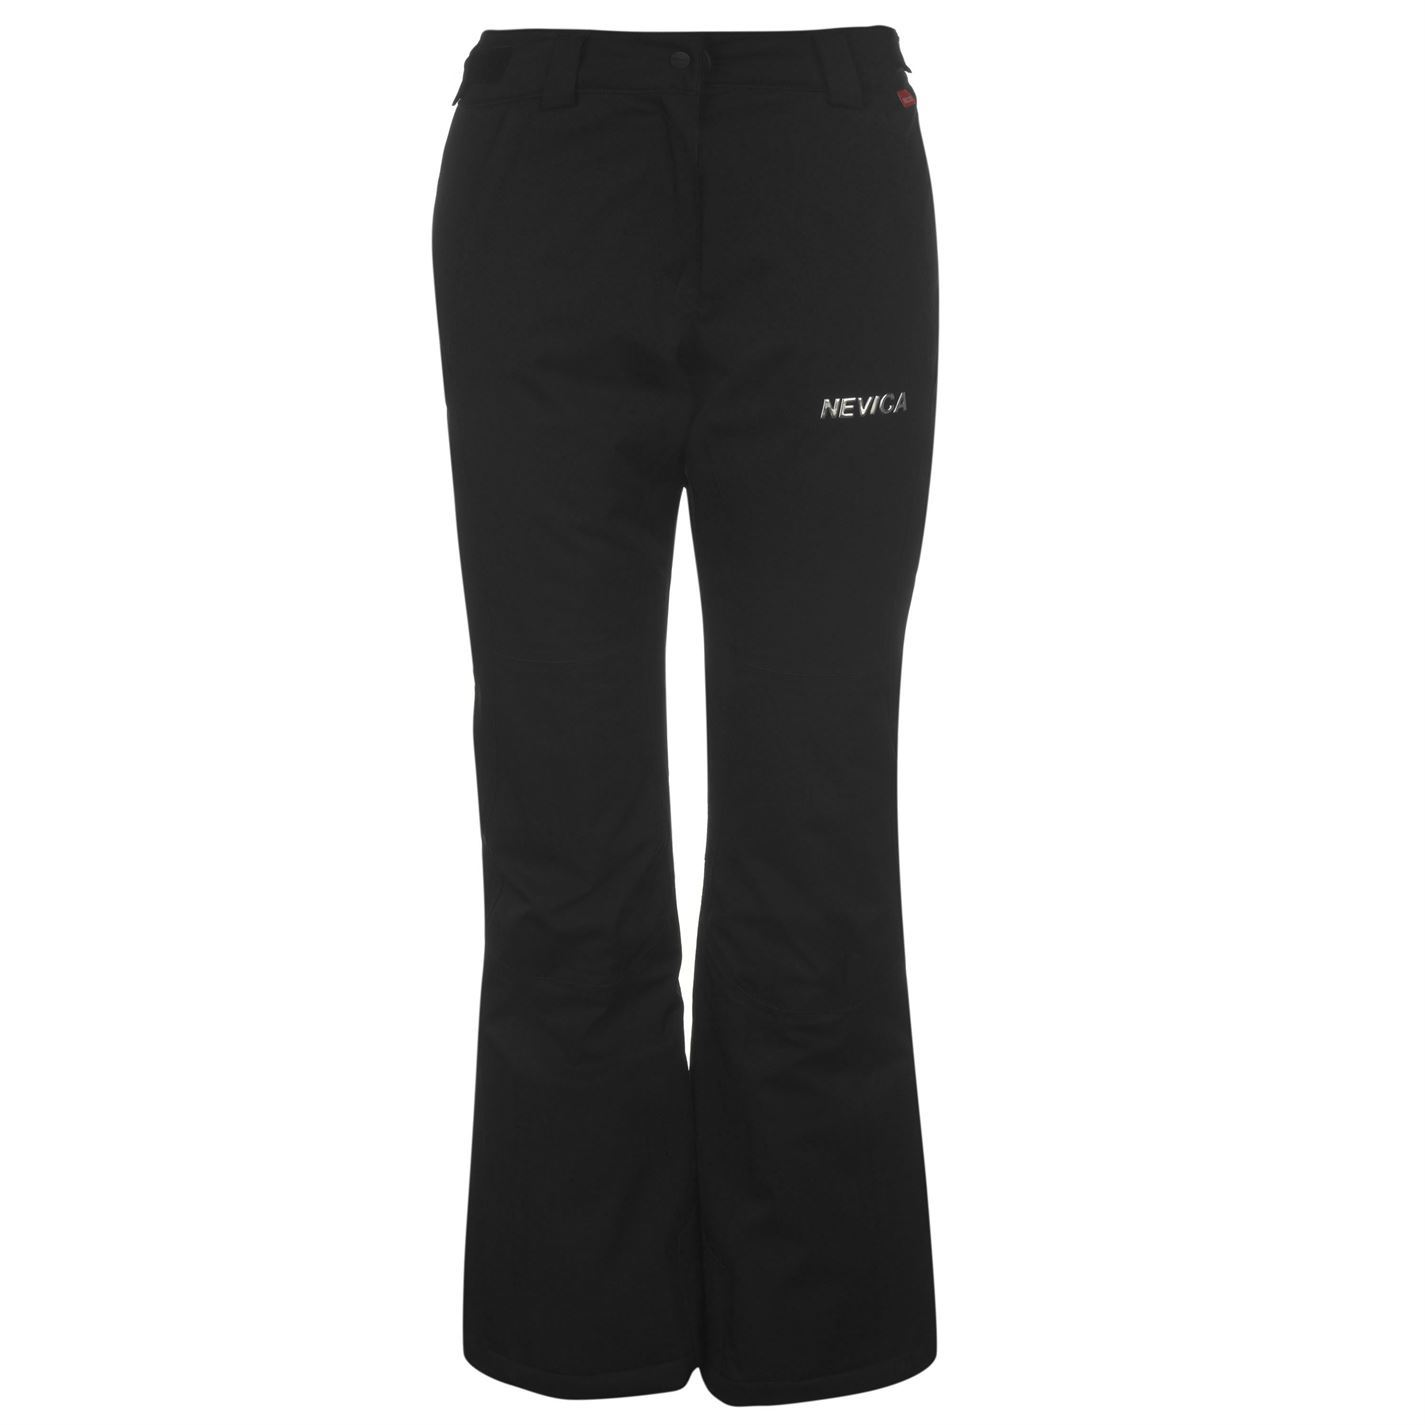 d229f1e98 Details about Nevica Womens Whistler Ski Pants Salopettes Trousers Bottoms  Zip